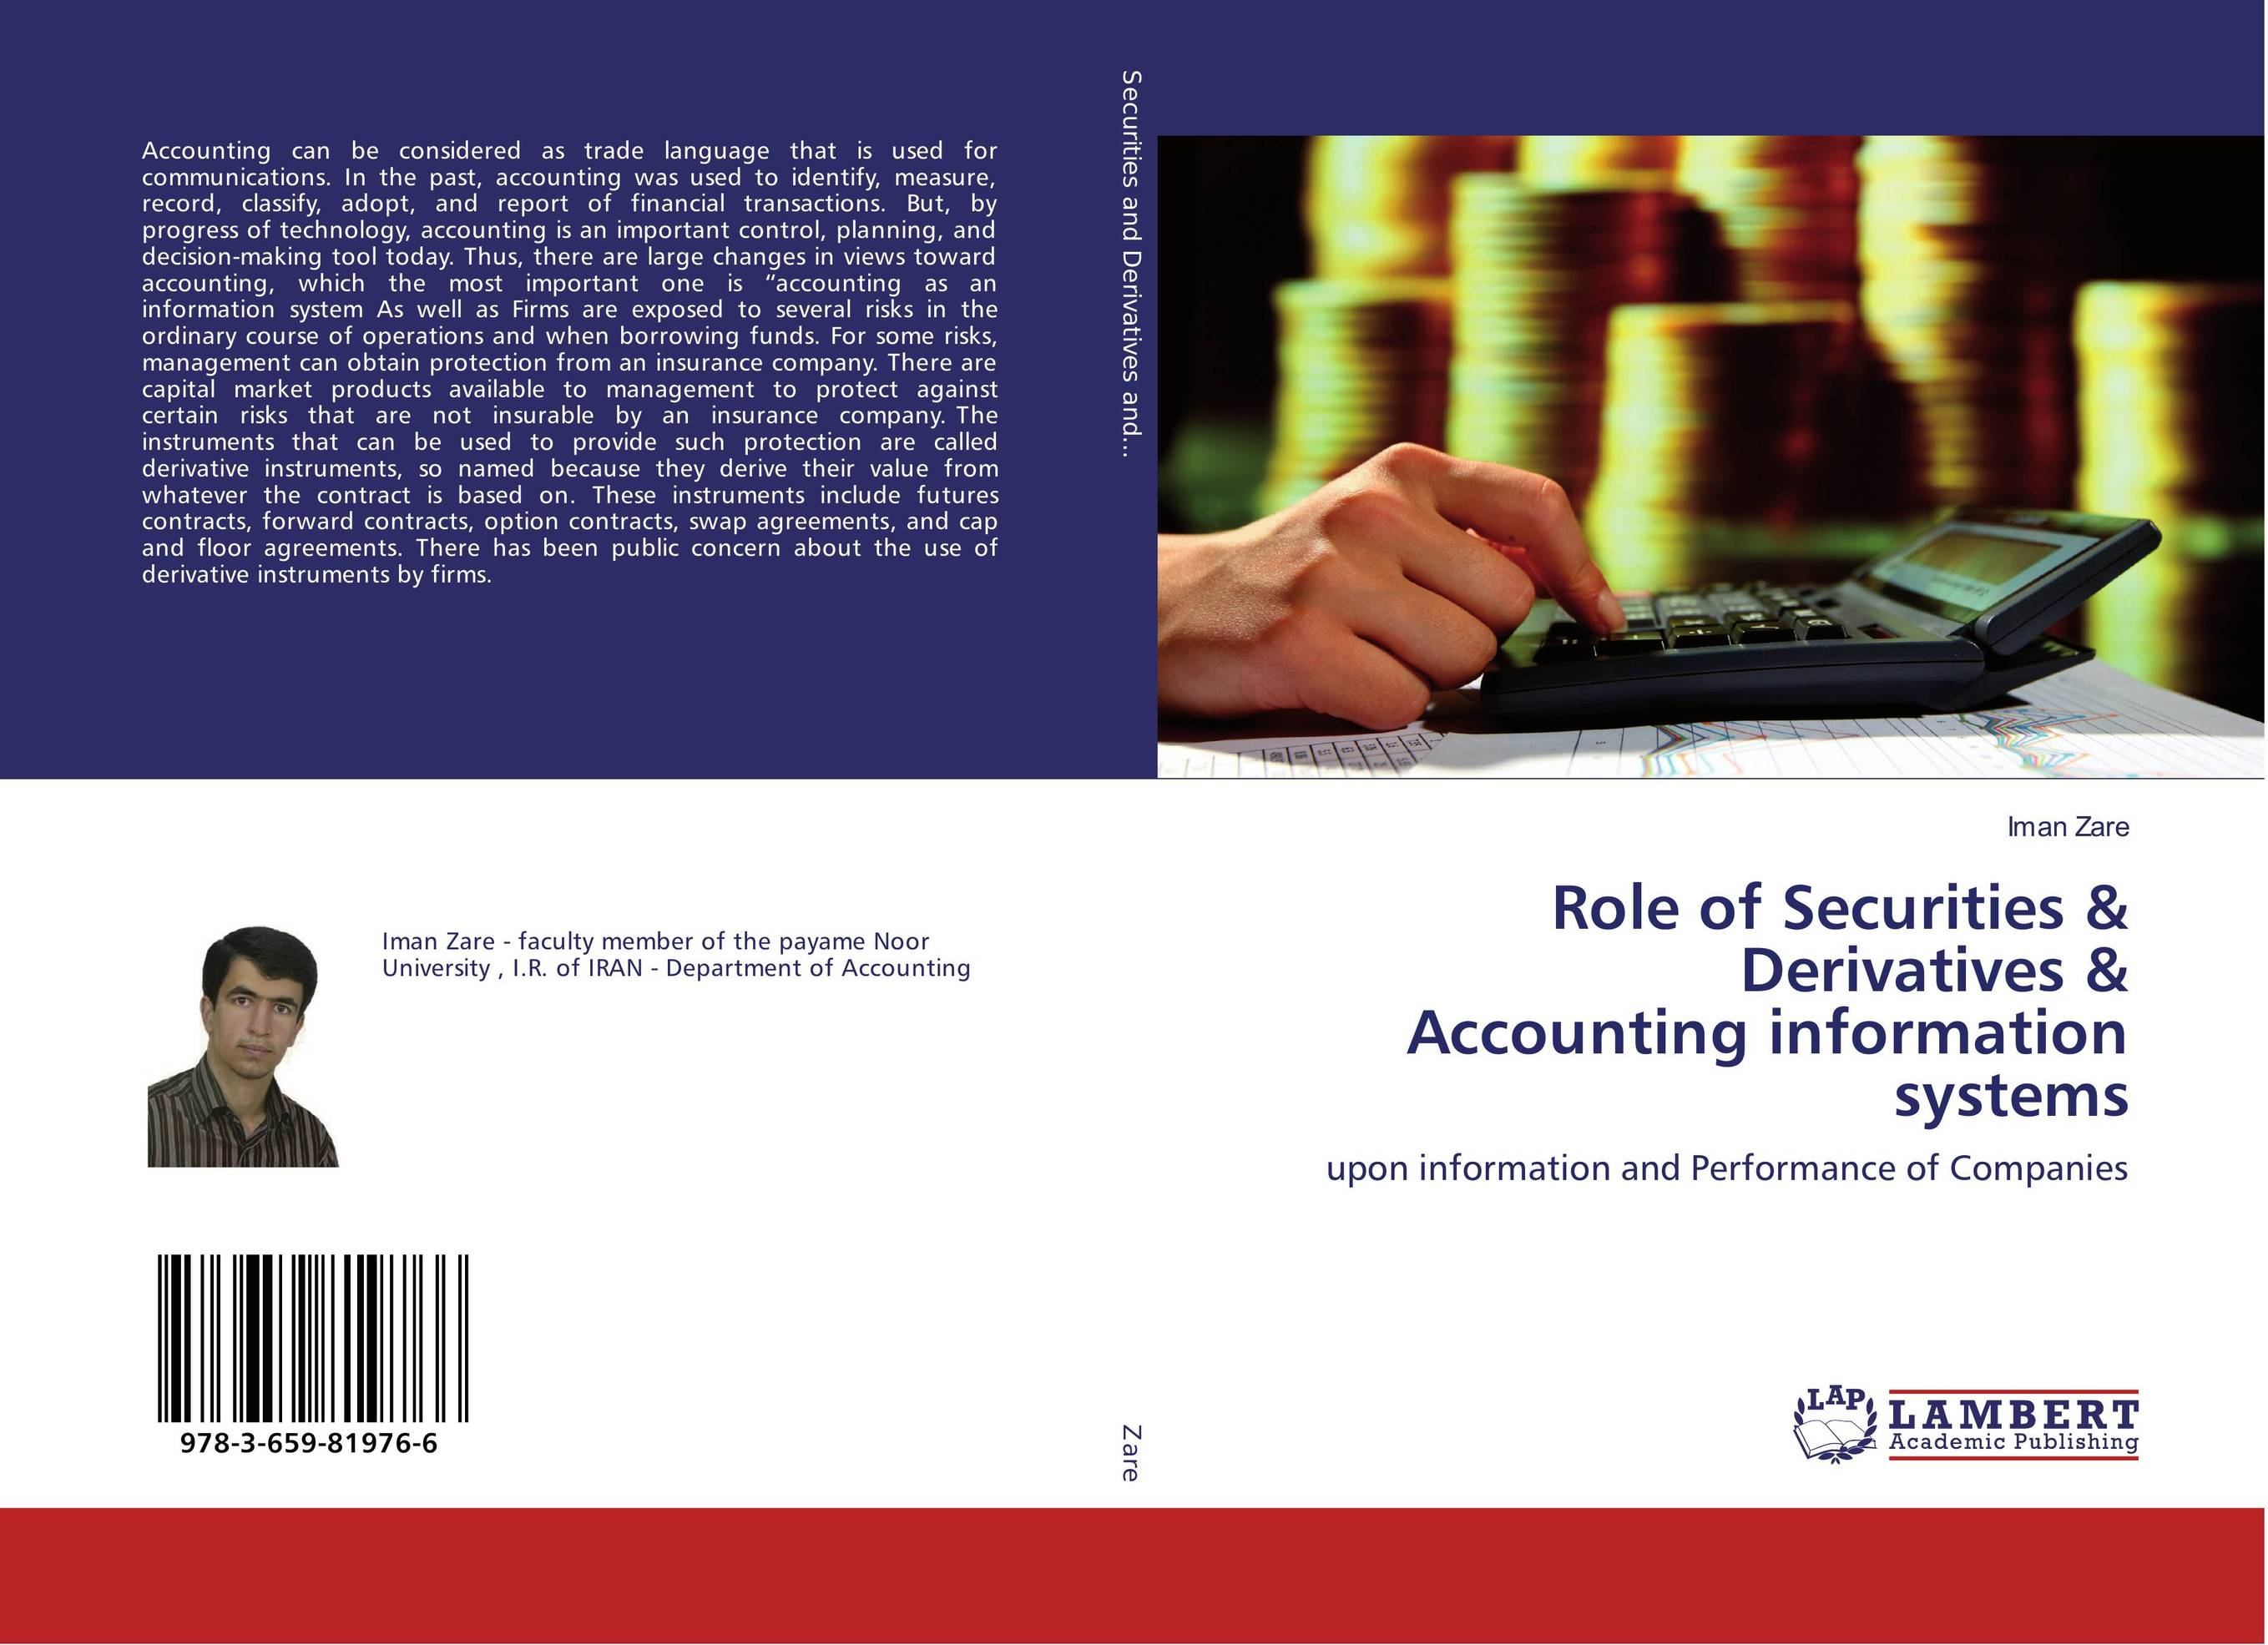 Role of Securities & Derivatives & Accounting information systems dysfunctions in accounting and the role of corporate lobbying